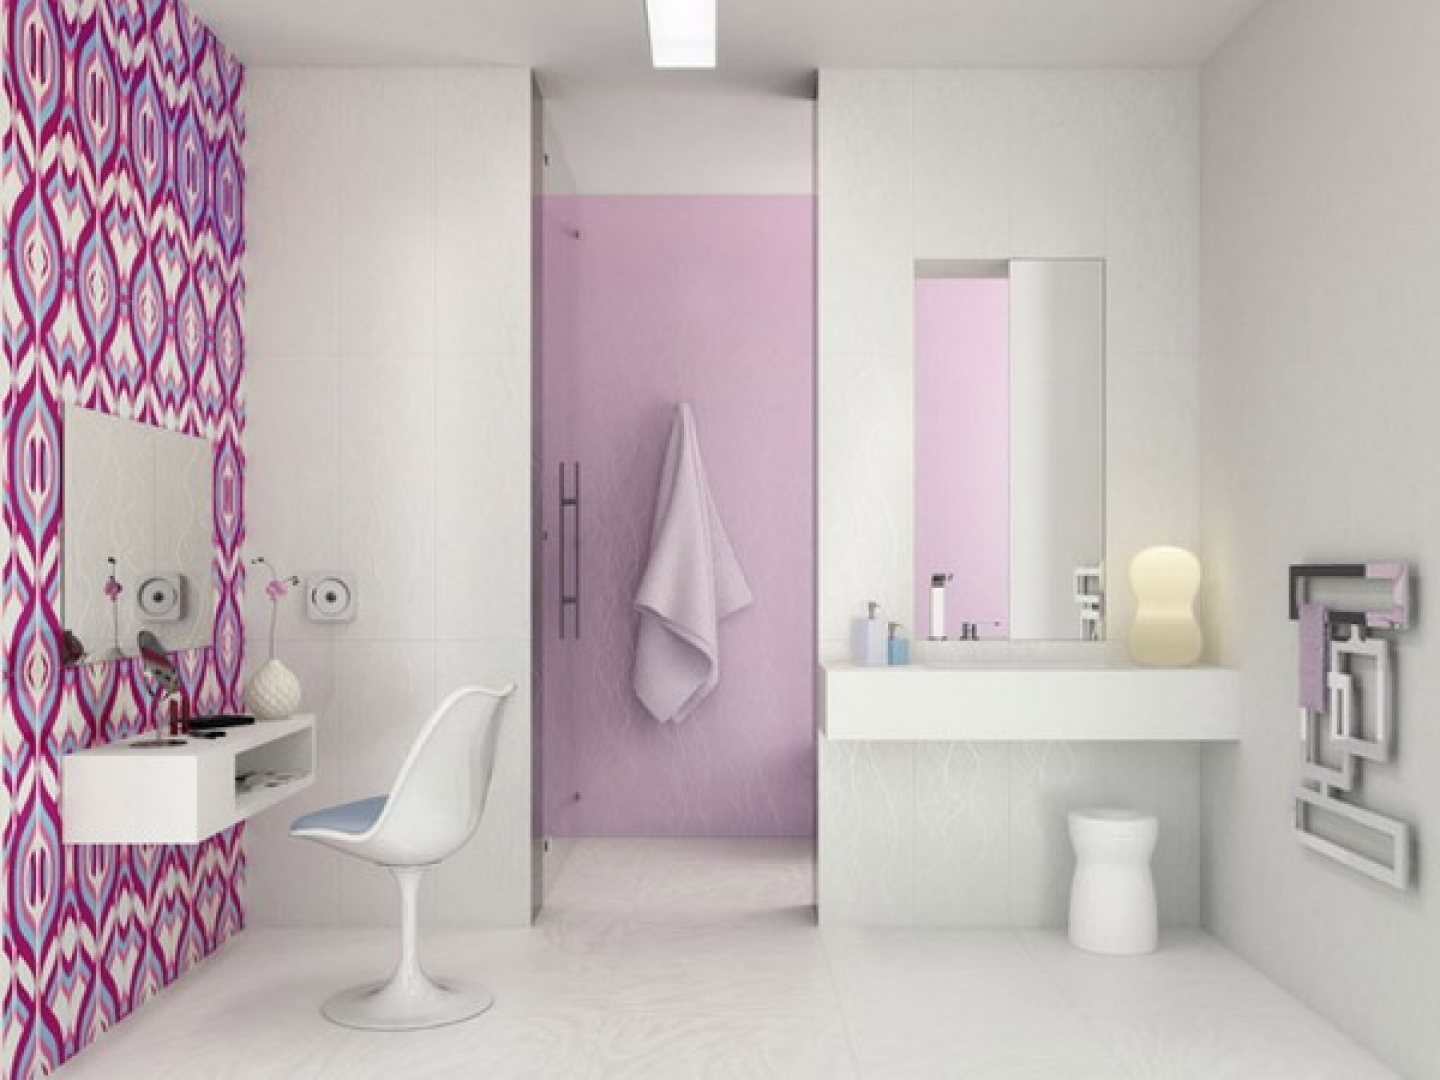 wallpaper bathroom wallpaper decorating ideas bathroom wallpaper ideas 1440x1080